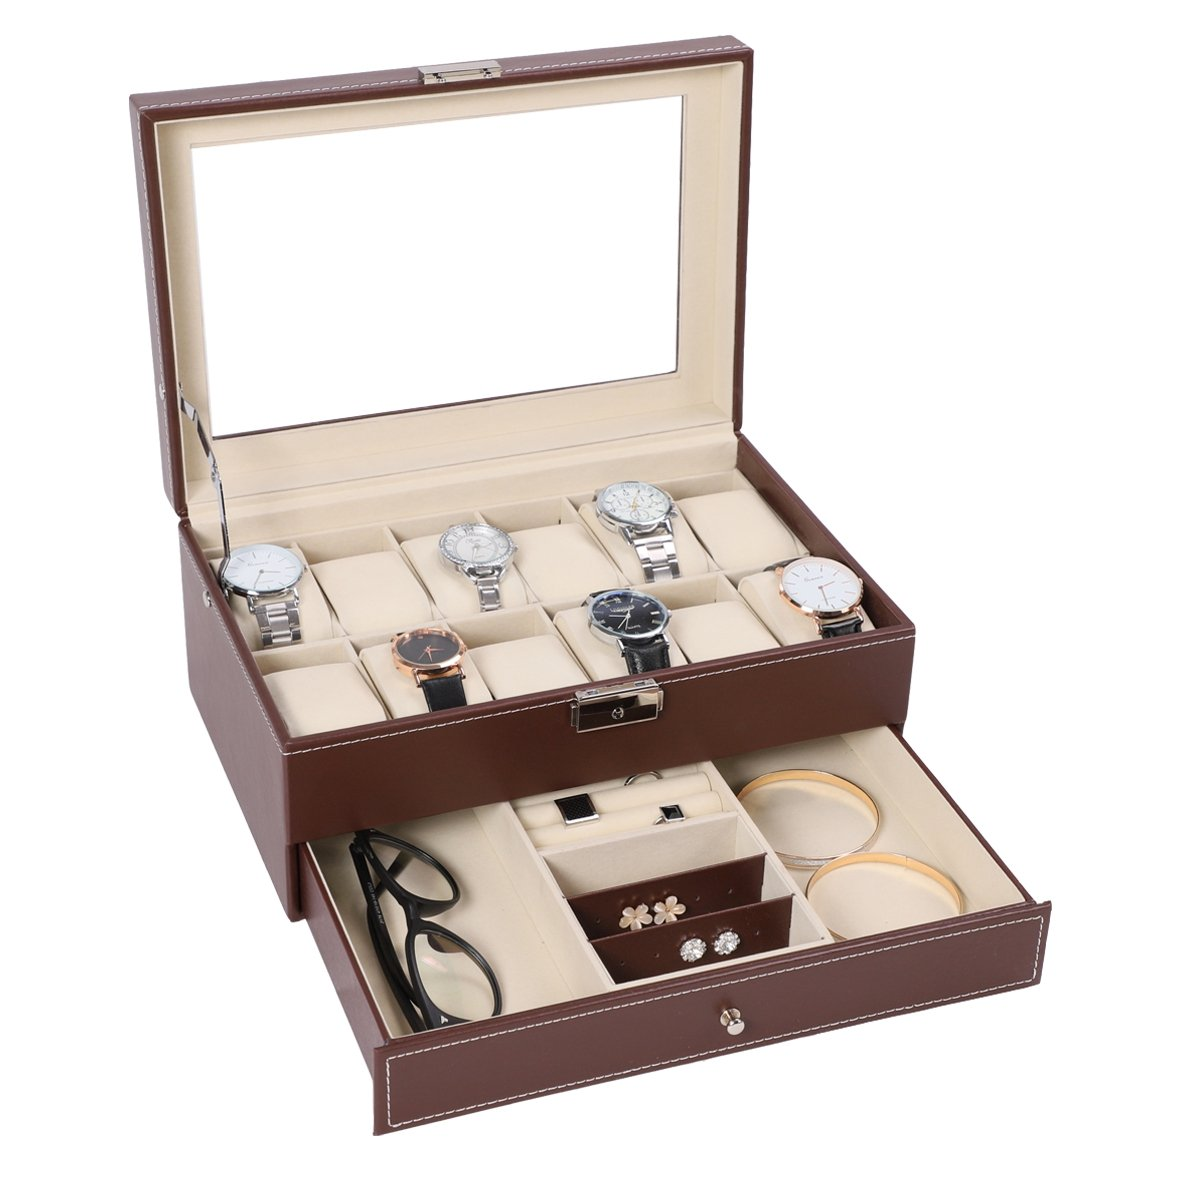 12 Watch Box Watch Display Organizer with PU Leather Jewelry Display Case with Key&Lock, Brown with Glass Top